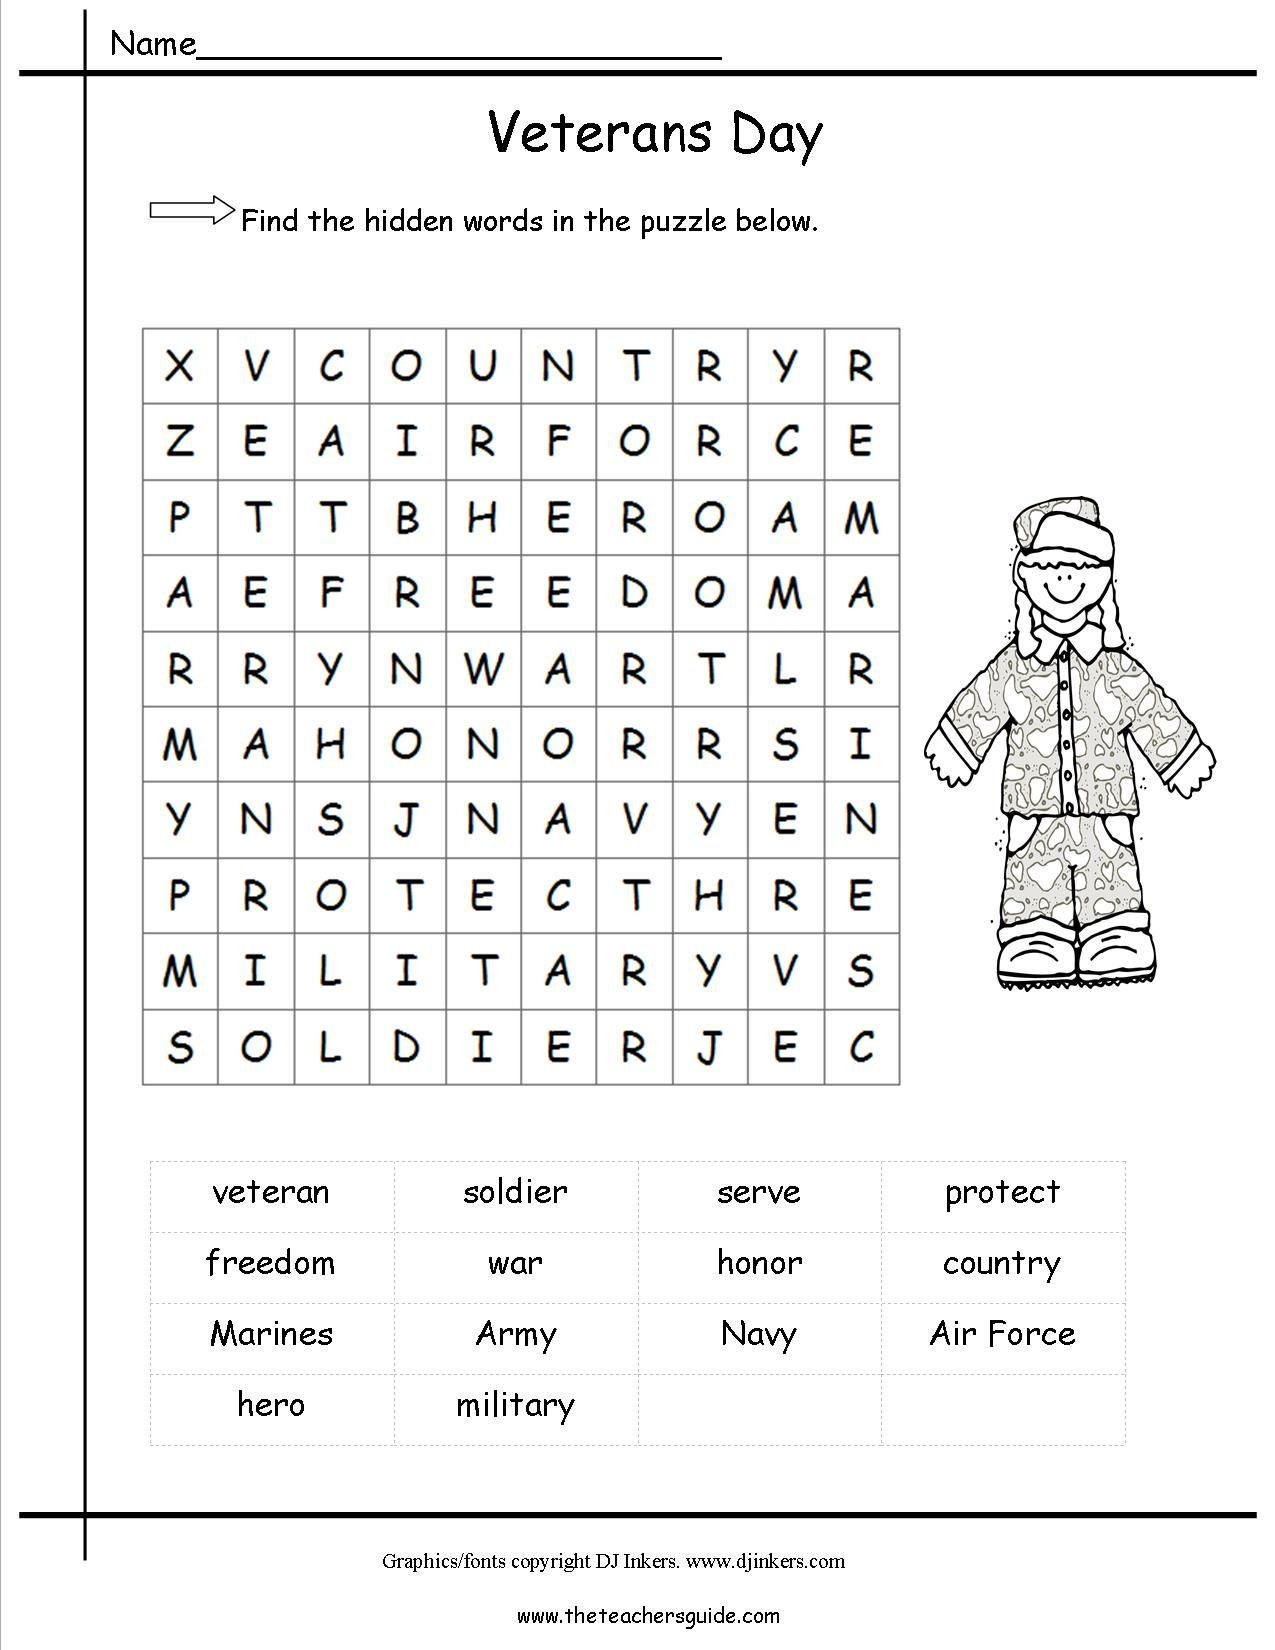 Veterans Day Math Worksheets Short Passage About Veterans Day with Questions Description